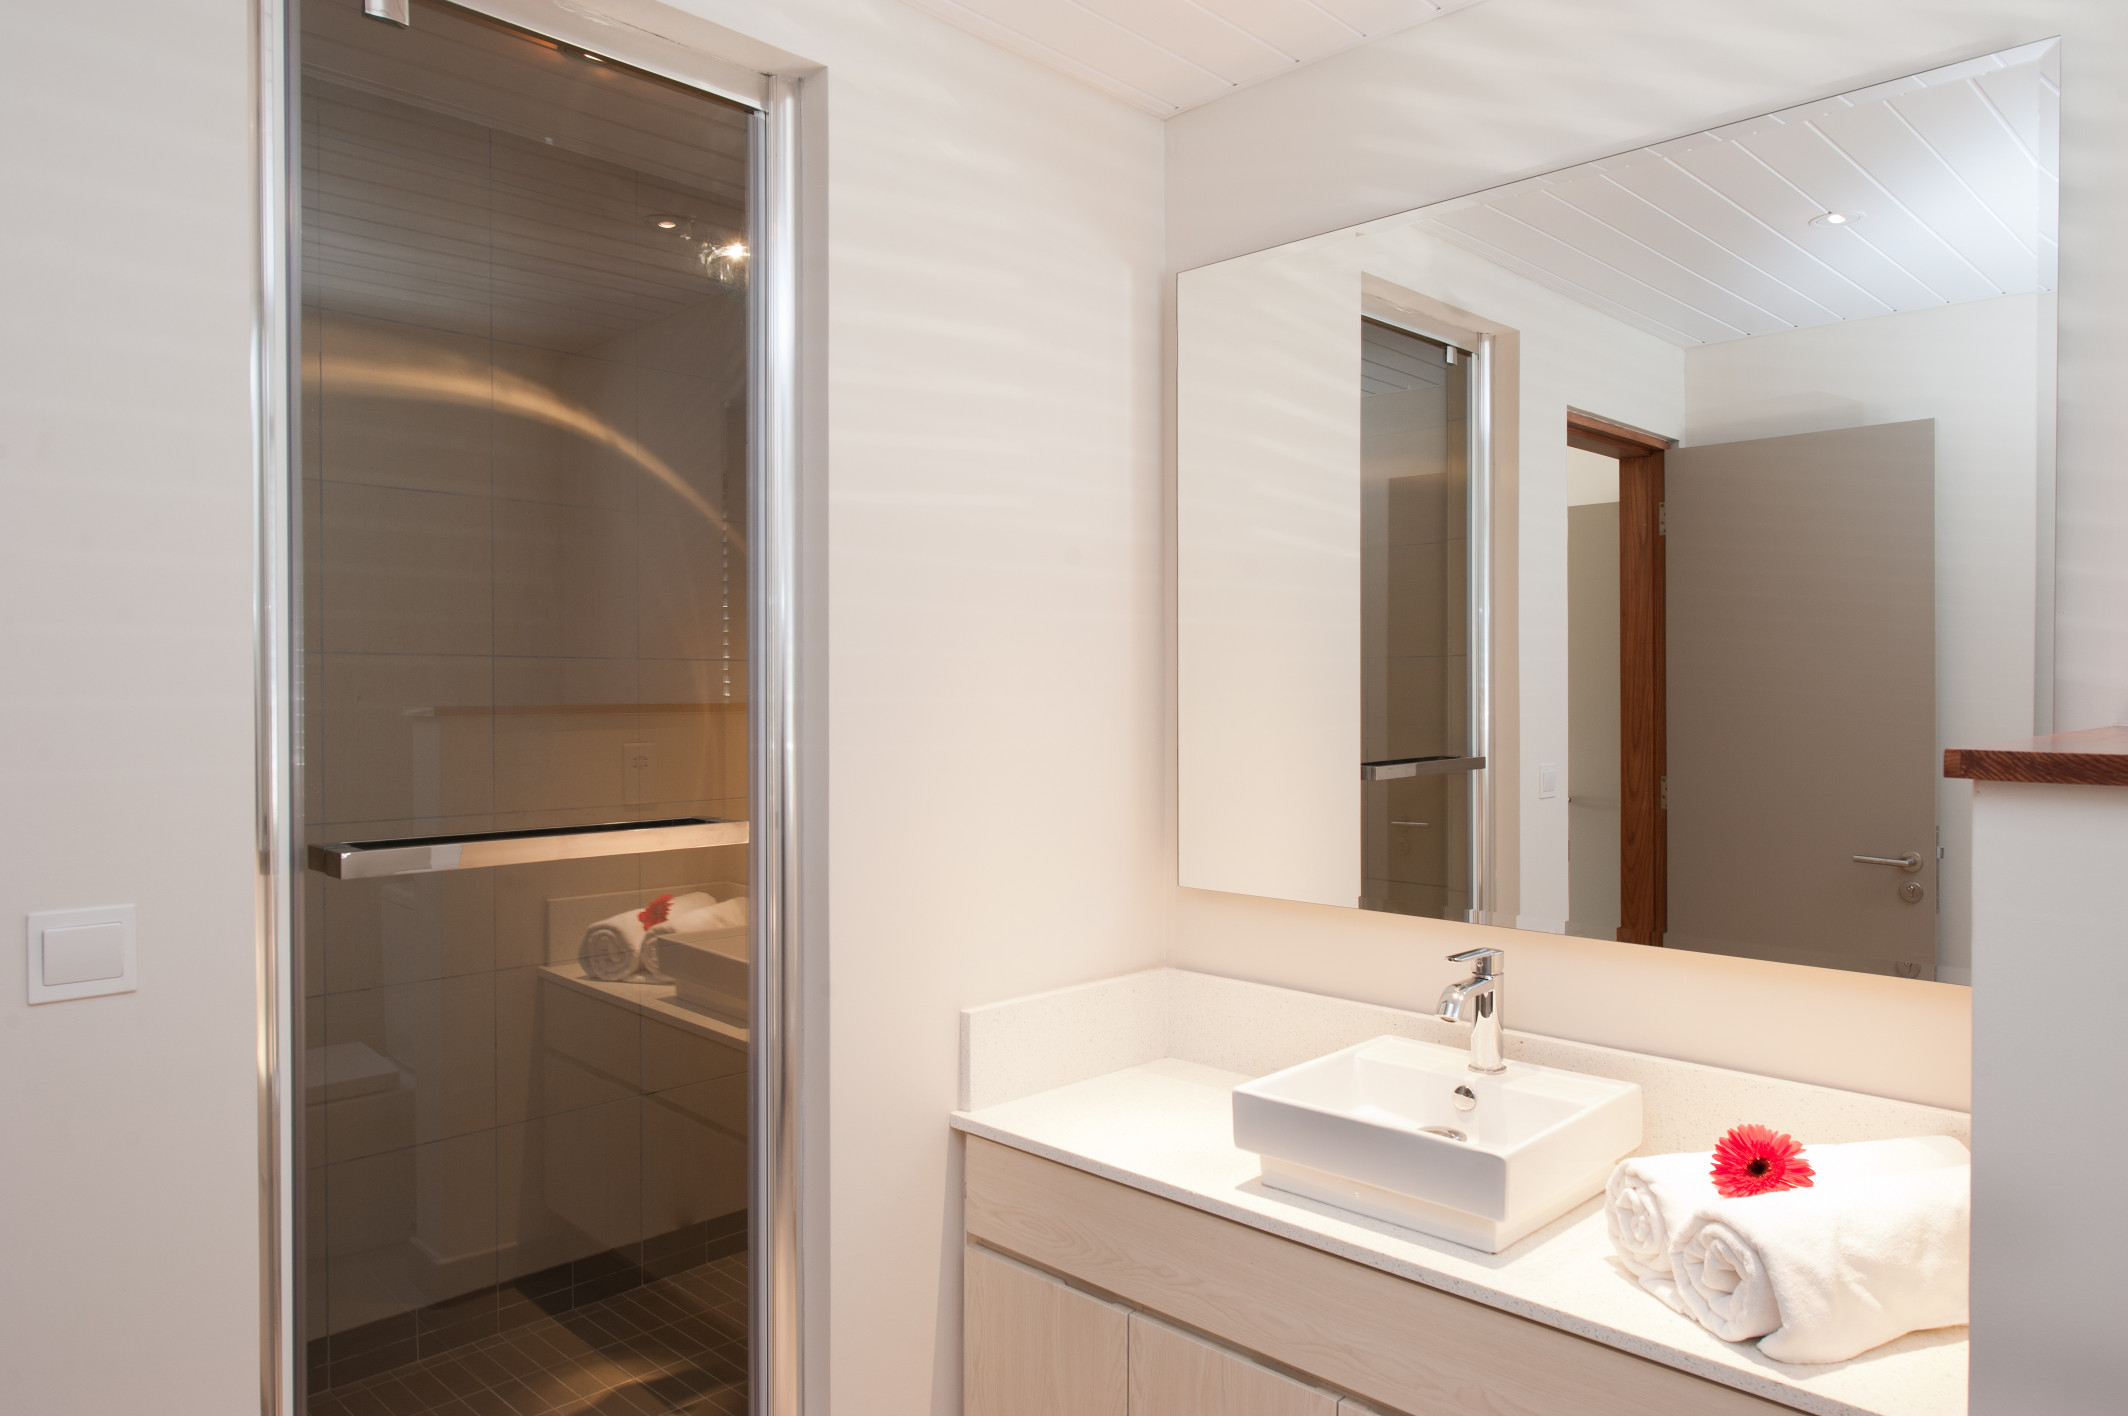 La Residence - Bathroom - 03.jpg